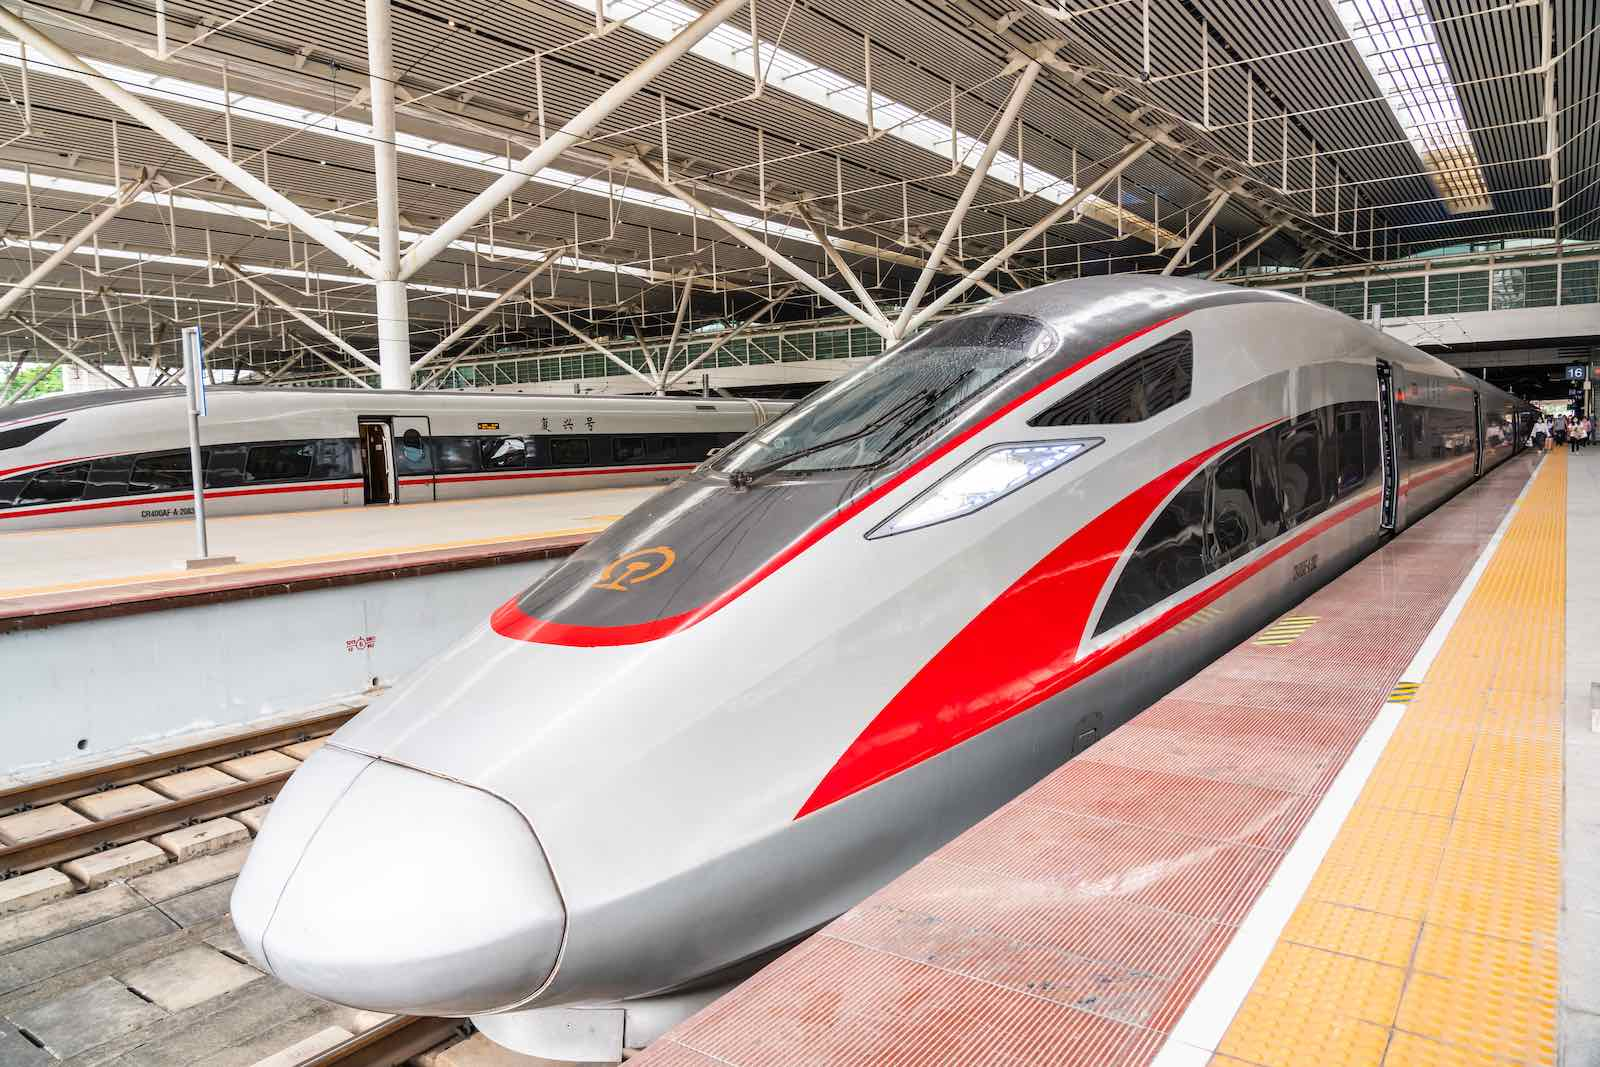 Fuxing high-speed trains operated by China Railway Corporation at Shenzhen North Railway Station in Guangdong province, 7 October (Alex Tai/SOPA Images/LightRocket via Getty Images)